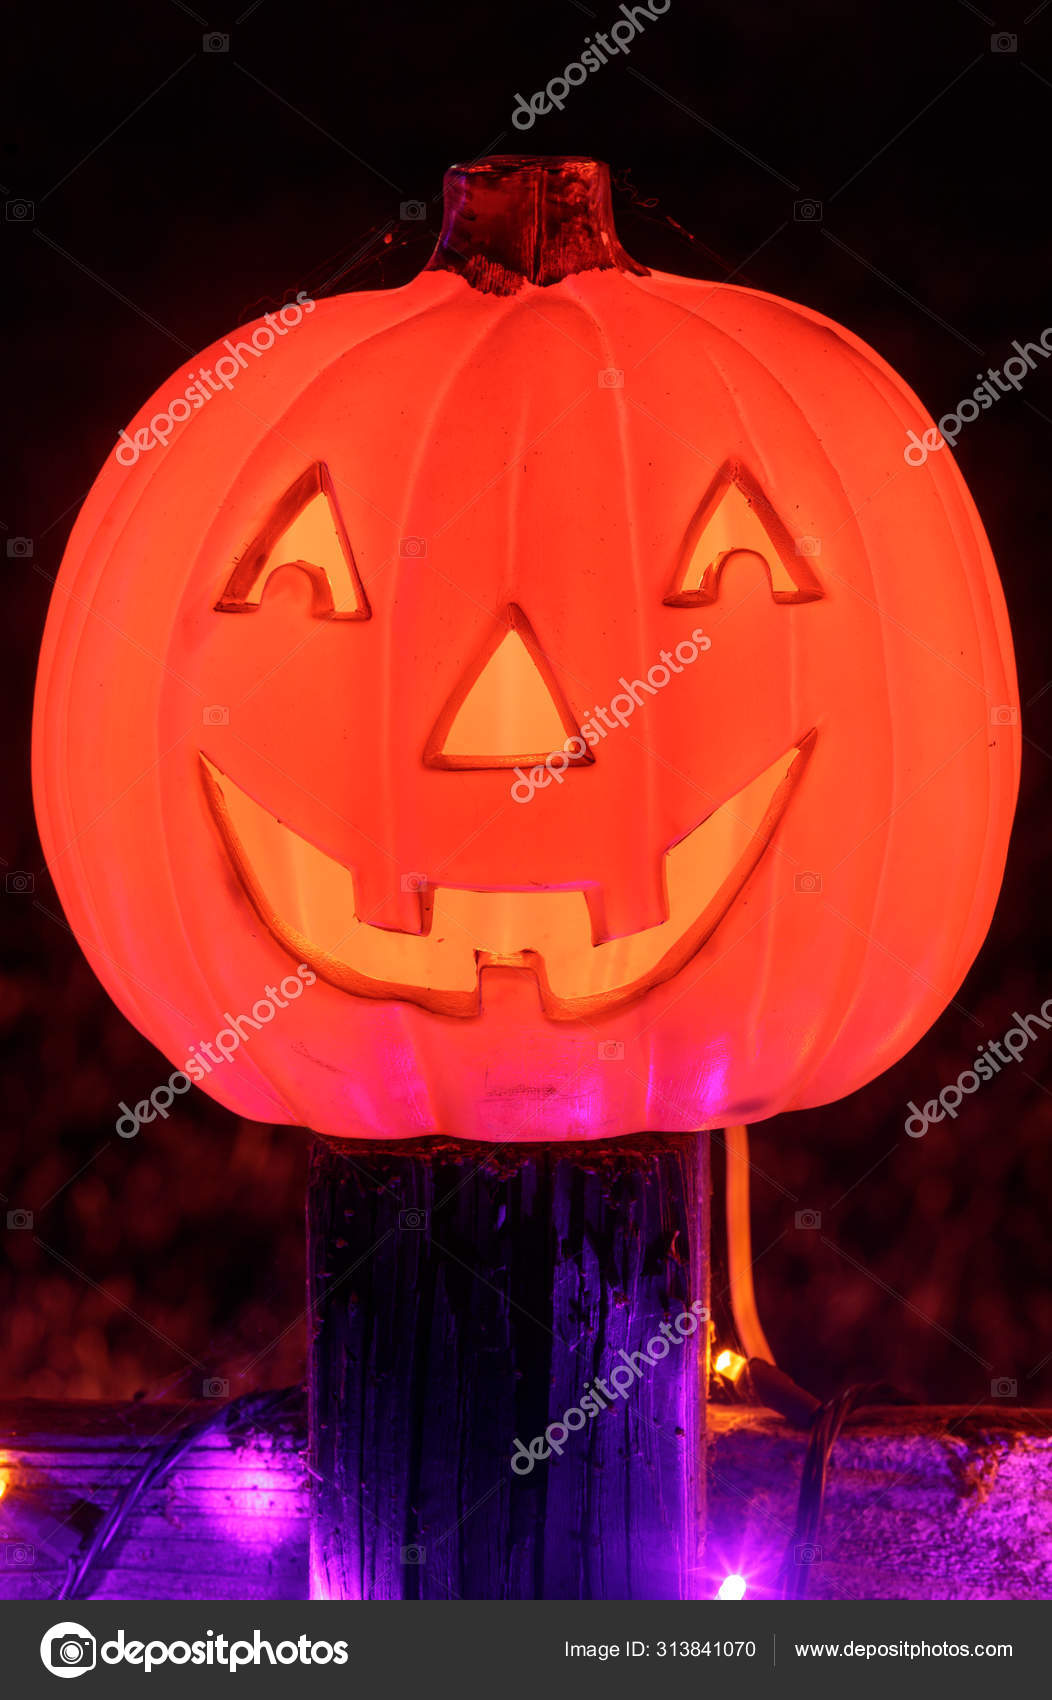 Jack Lantern Pumpkin Glowing Dark Halloween Season